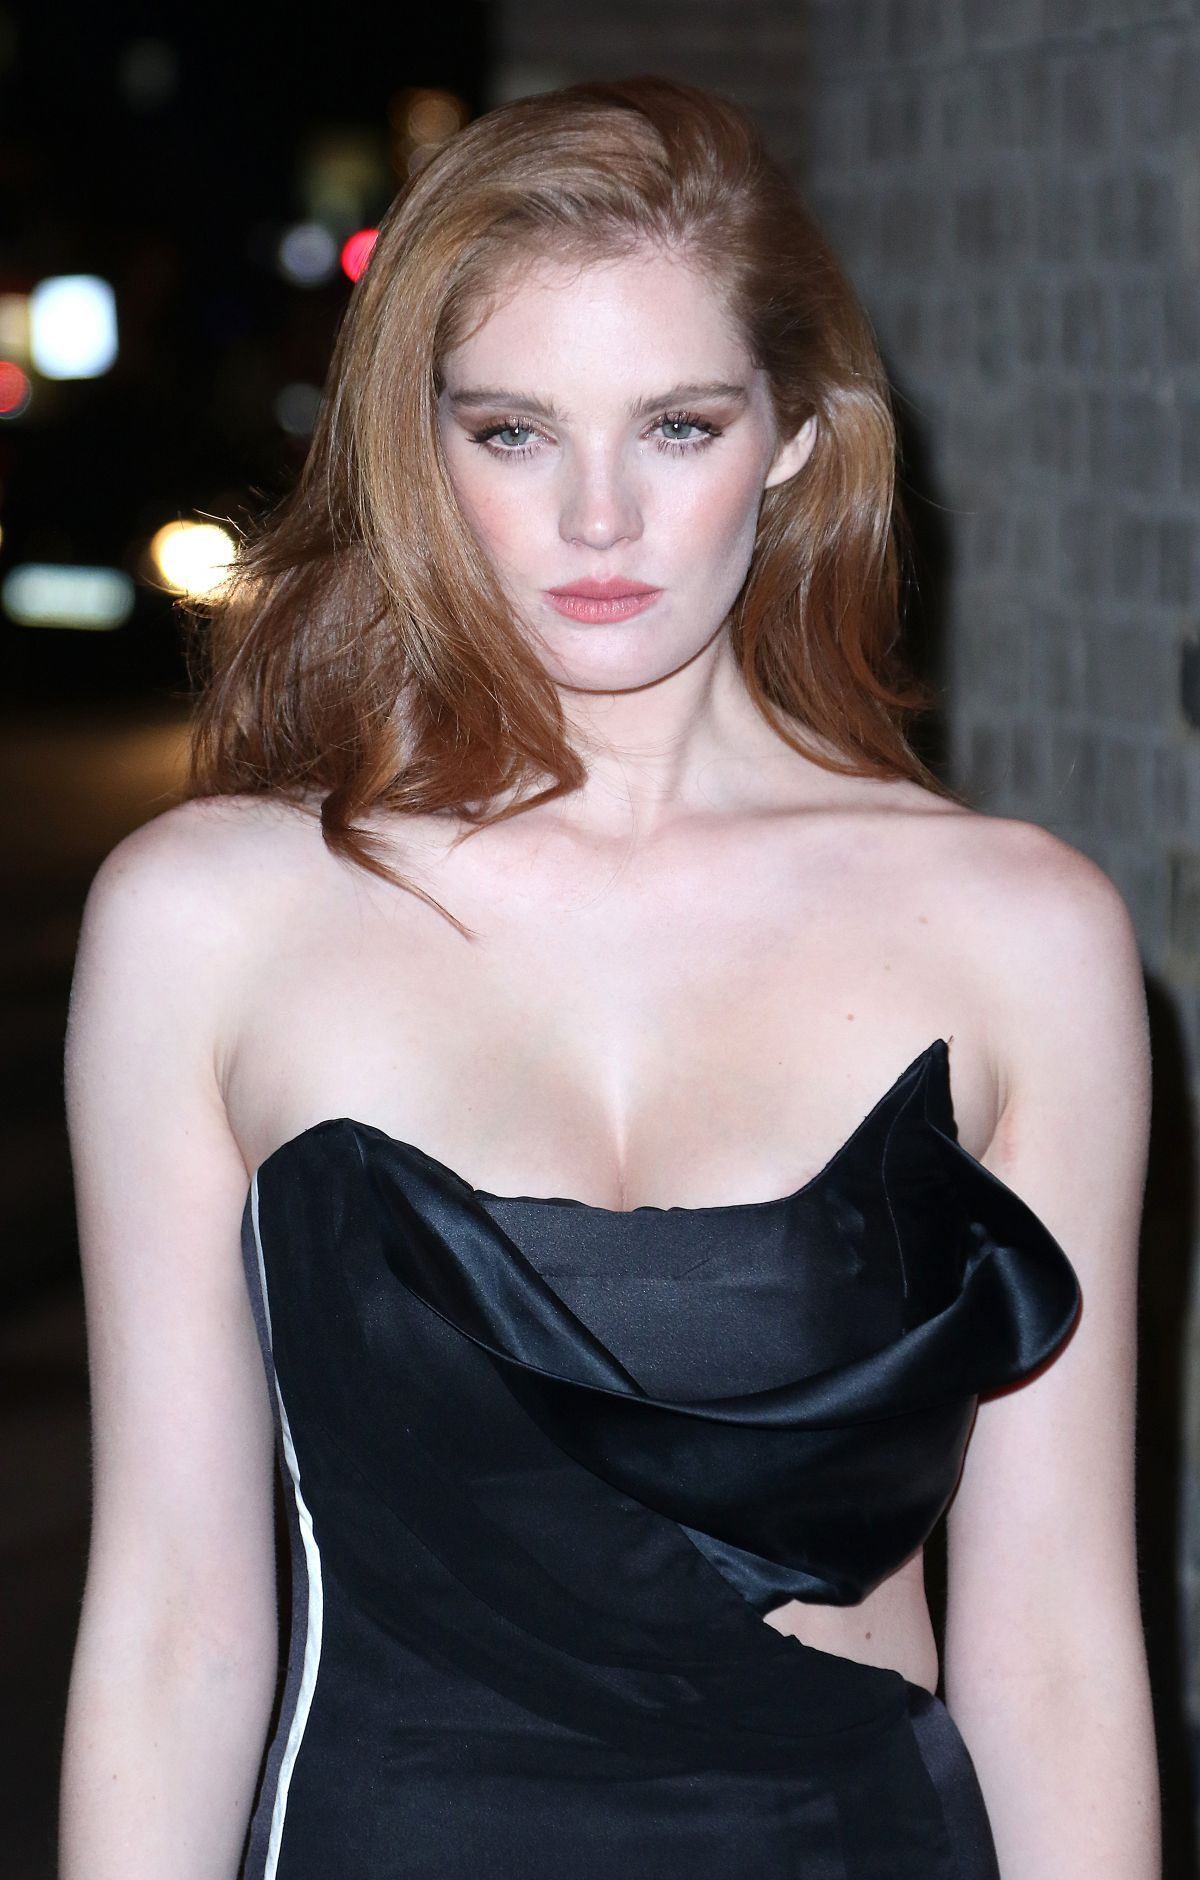 Pictures Alexina Graham naked (93 photos), Tits, Leaked, Boobs, underwear 2015